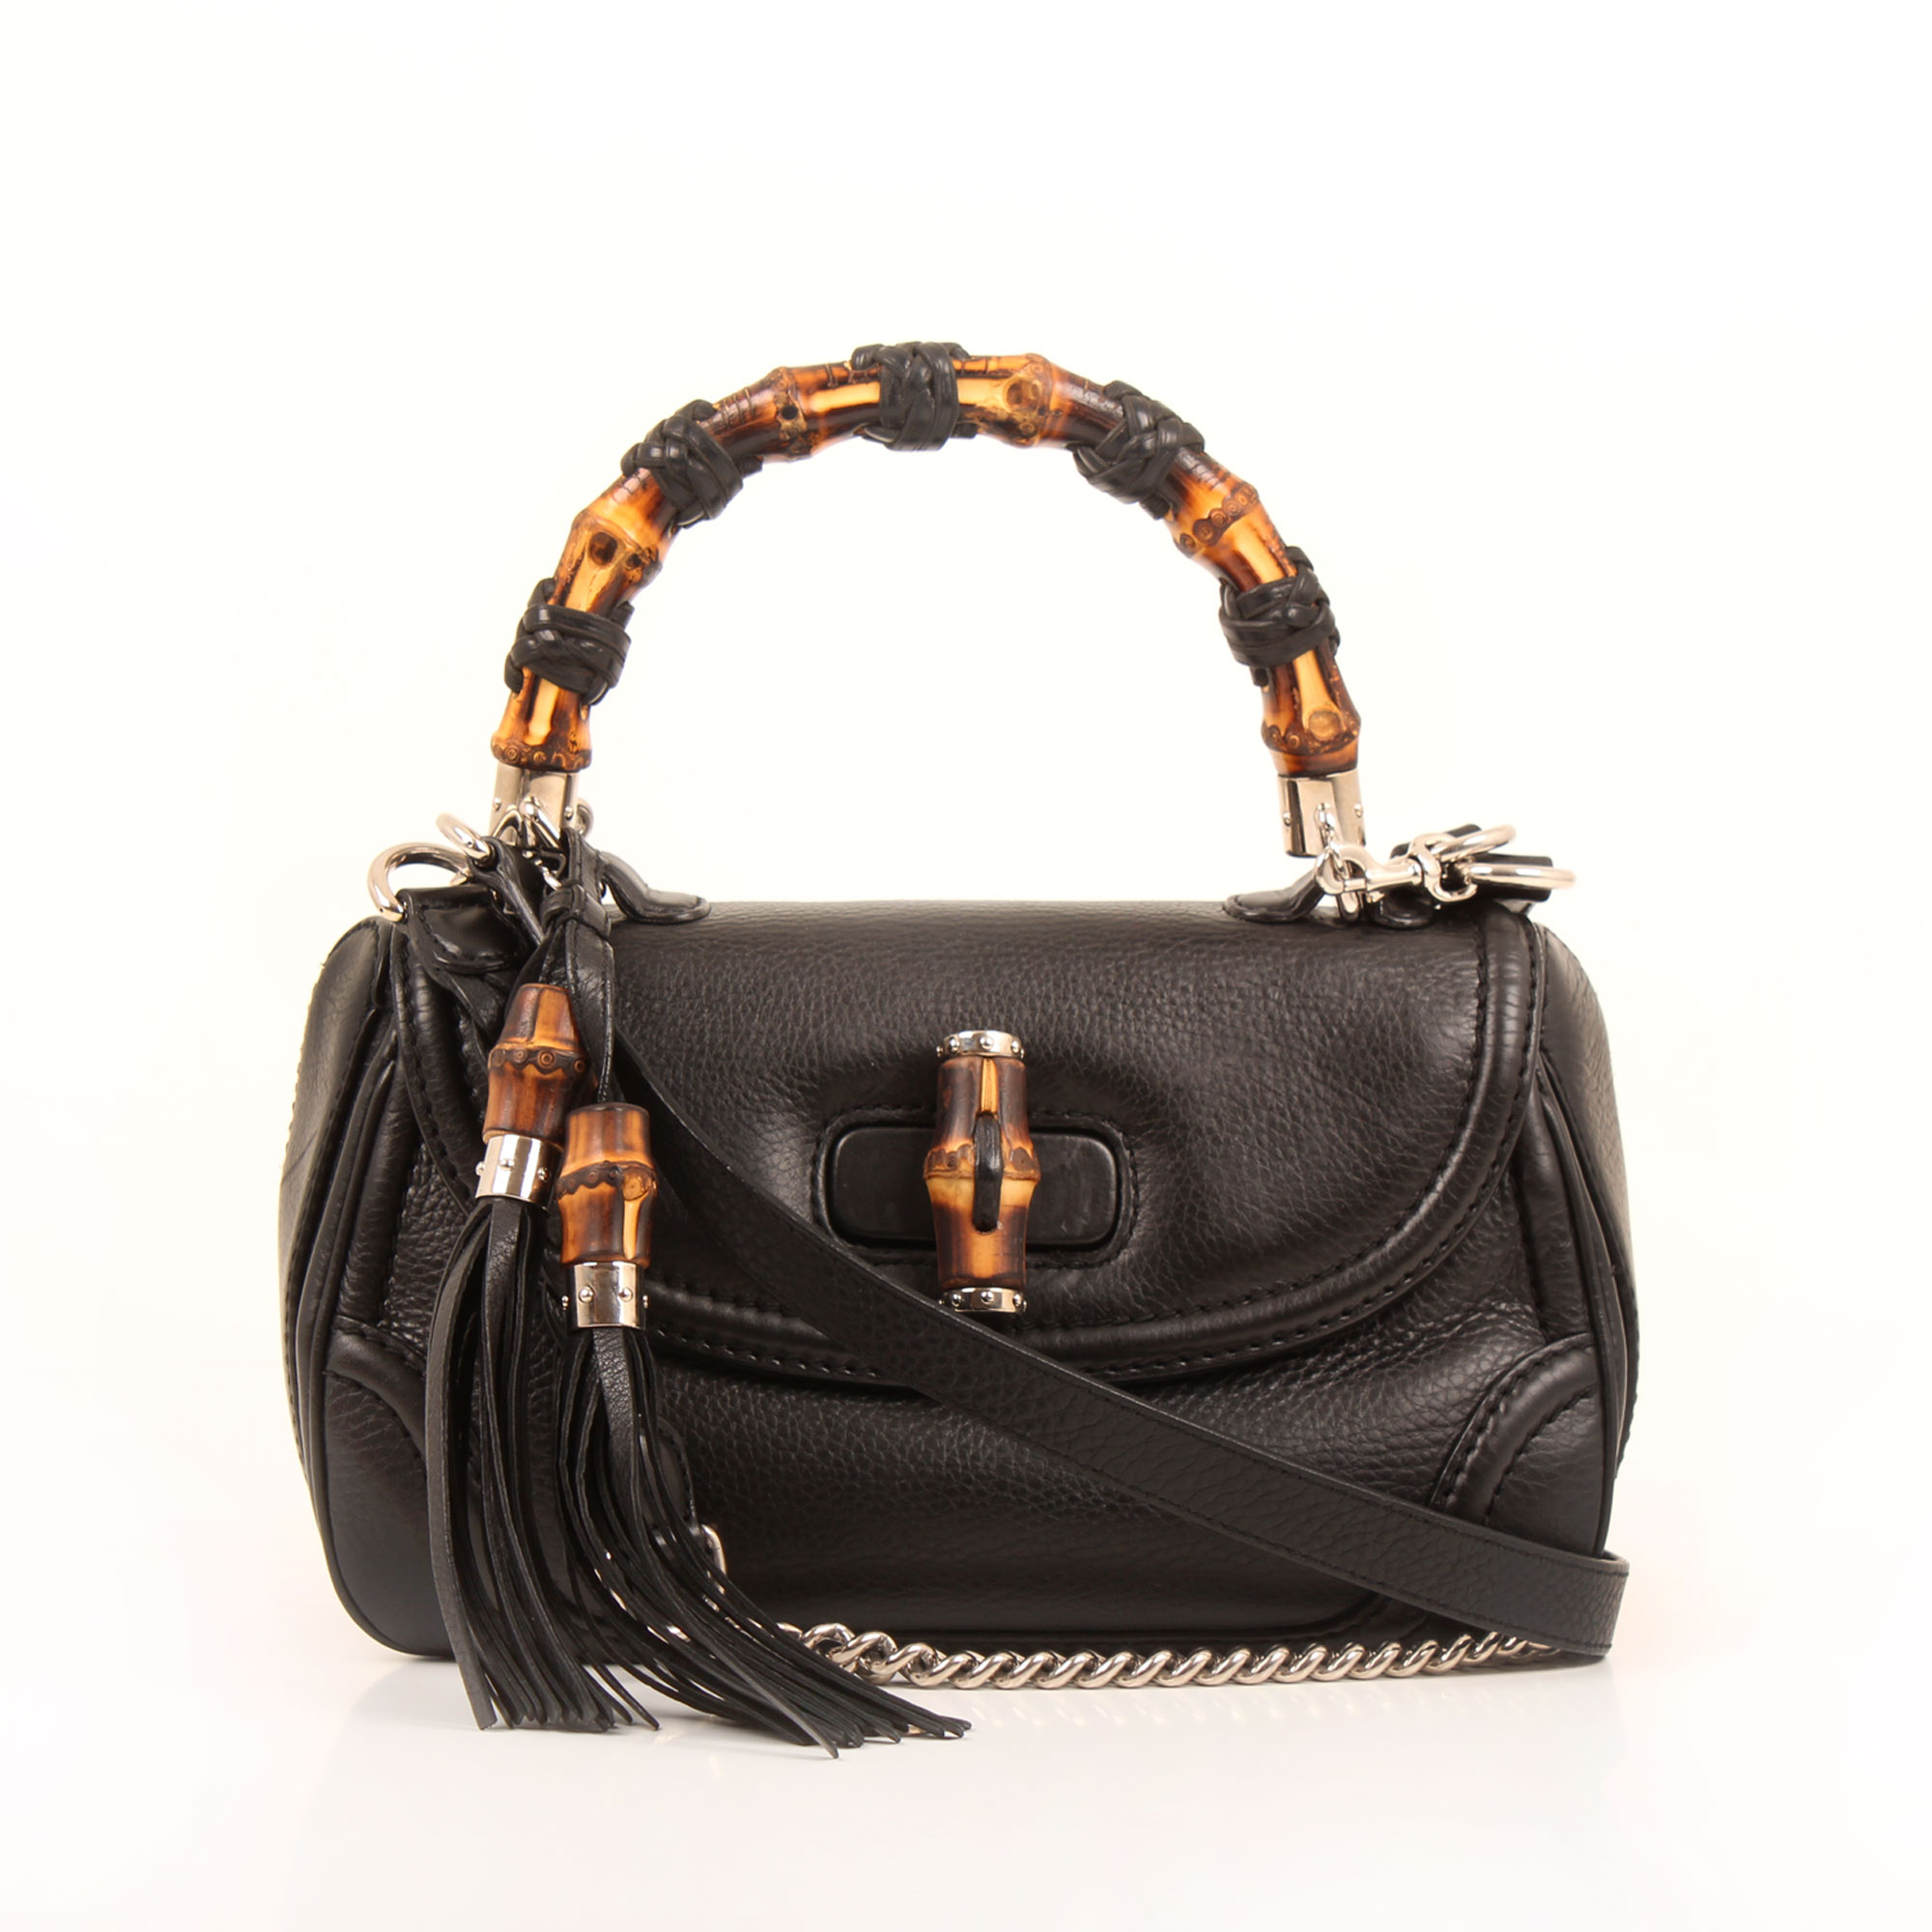 Imagen frontal del bolso gucci new bamboo negro frontal